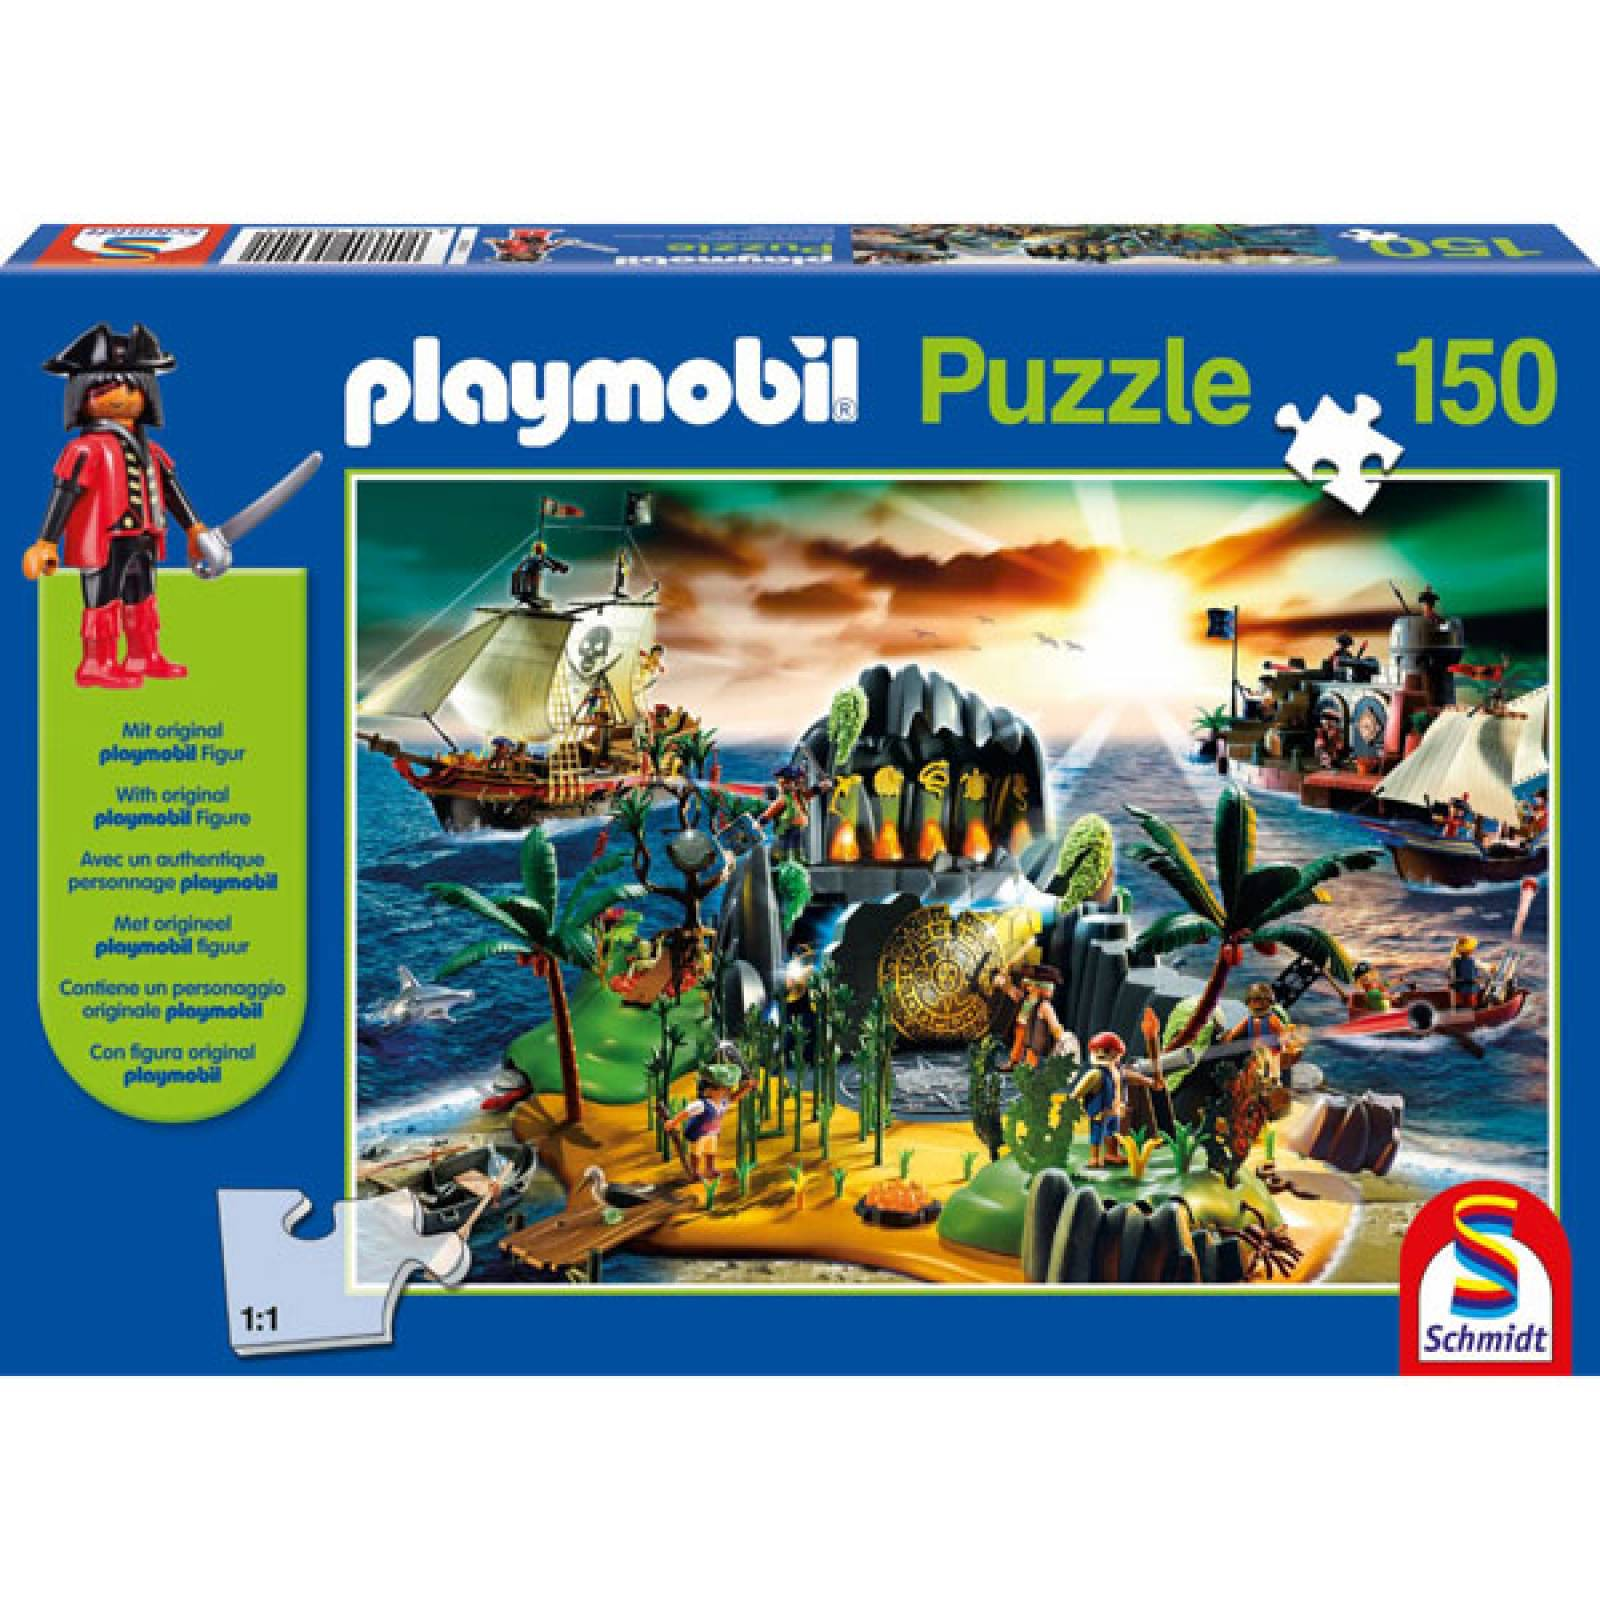 Playmobil Pirate Island 150 Piece Jigsaw Puzzle thumbnails